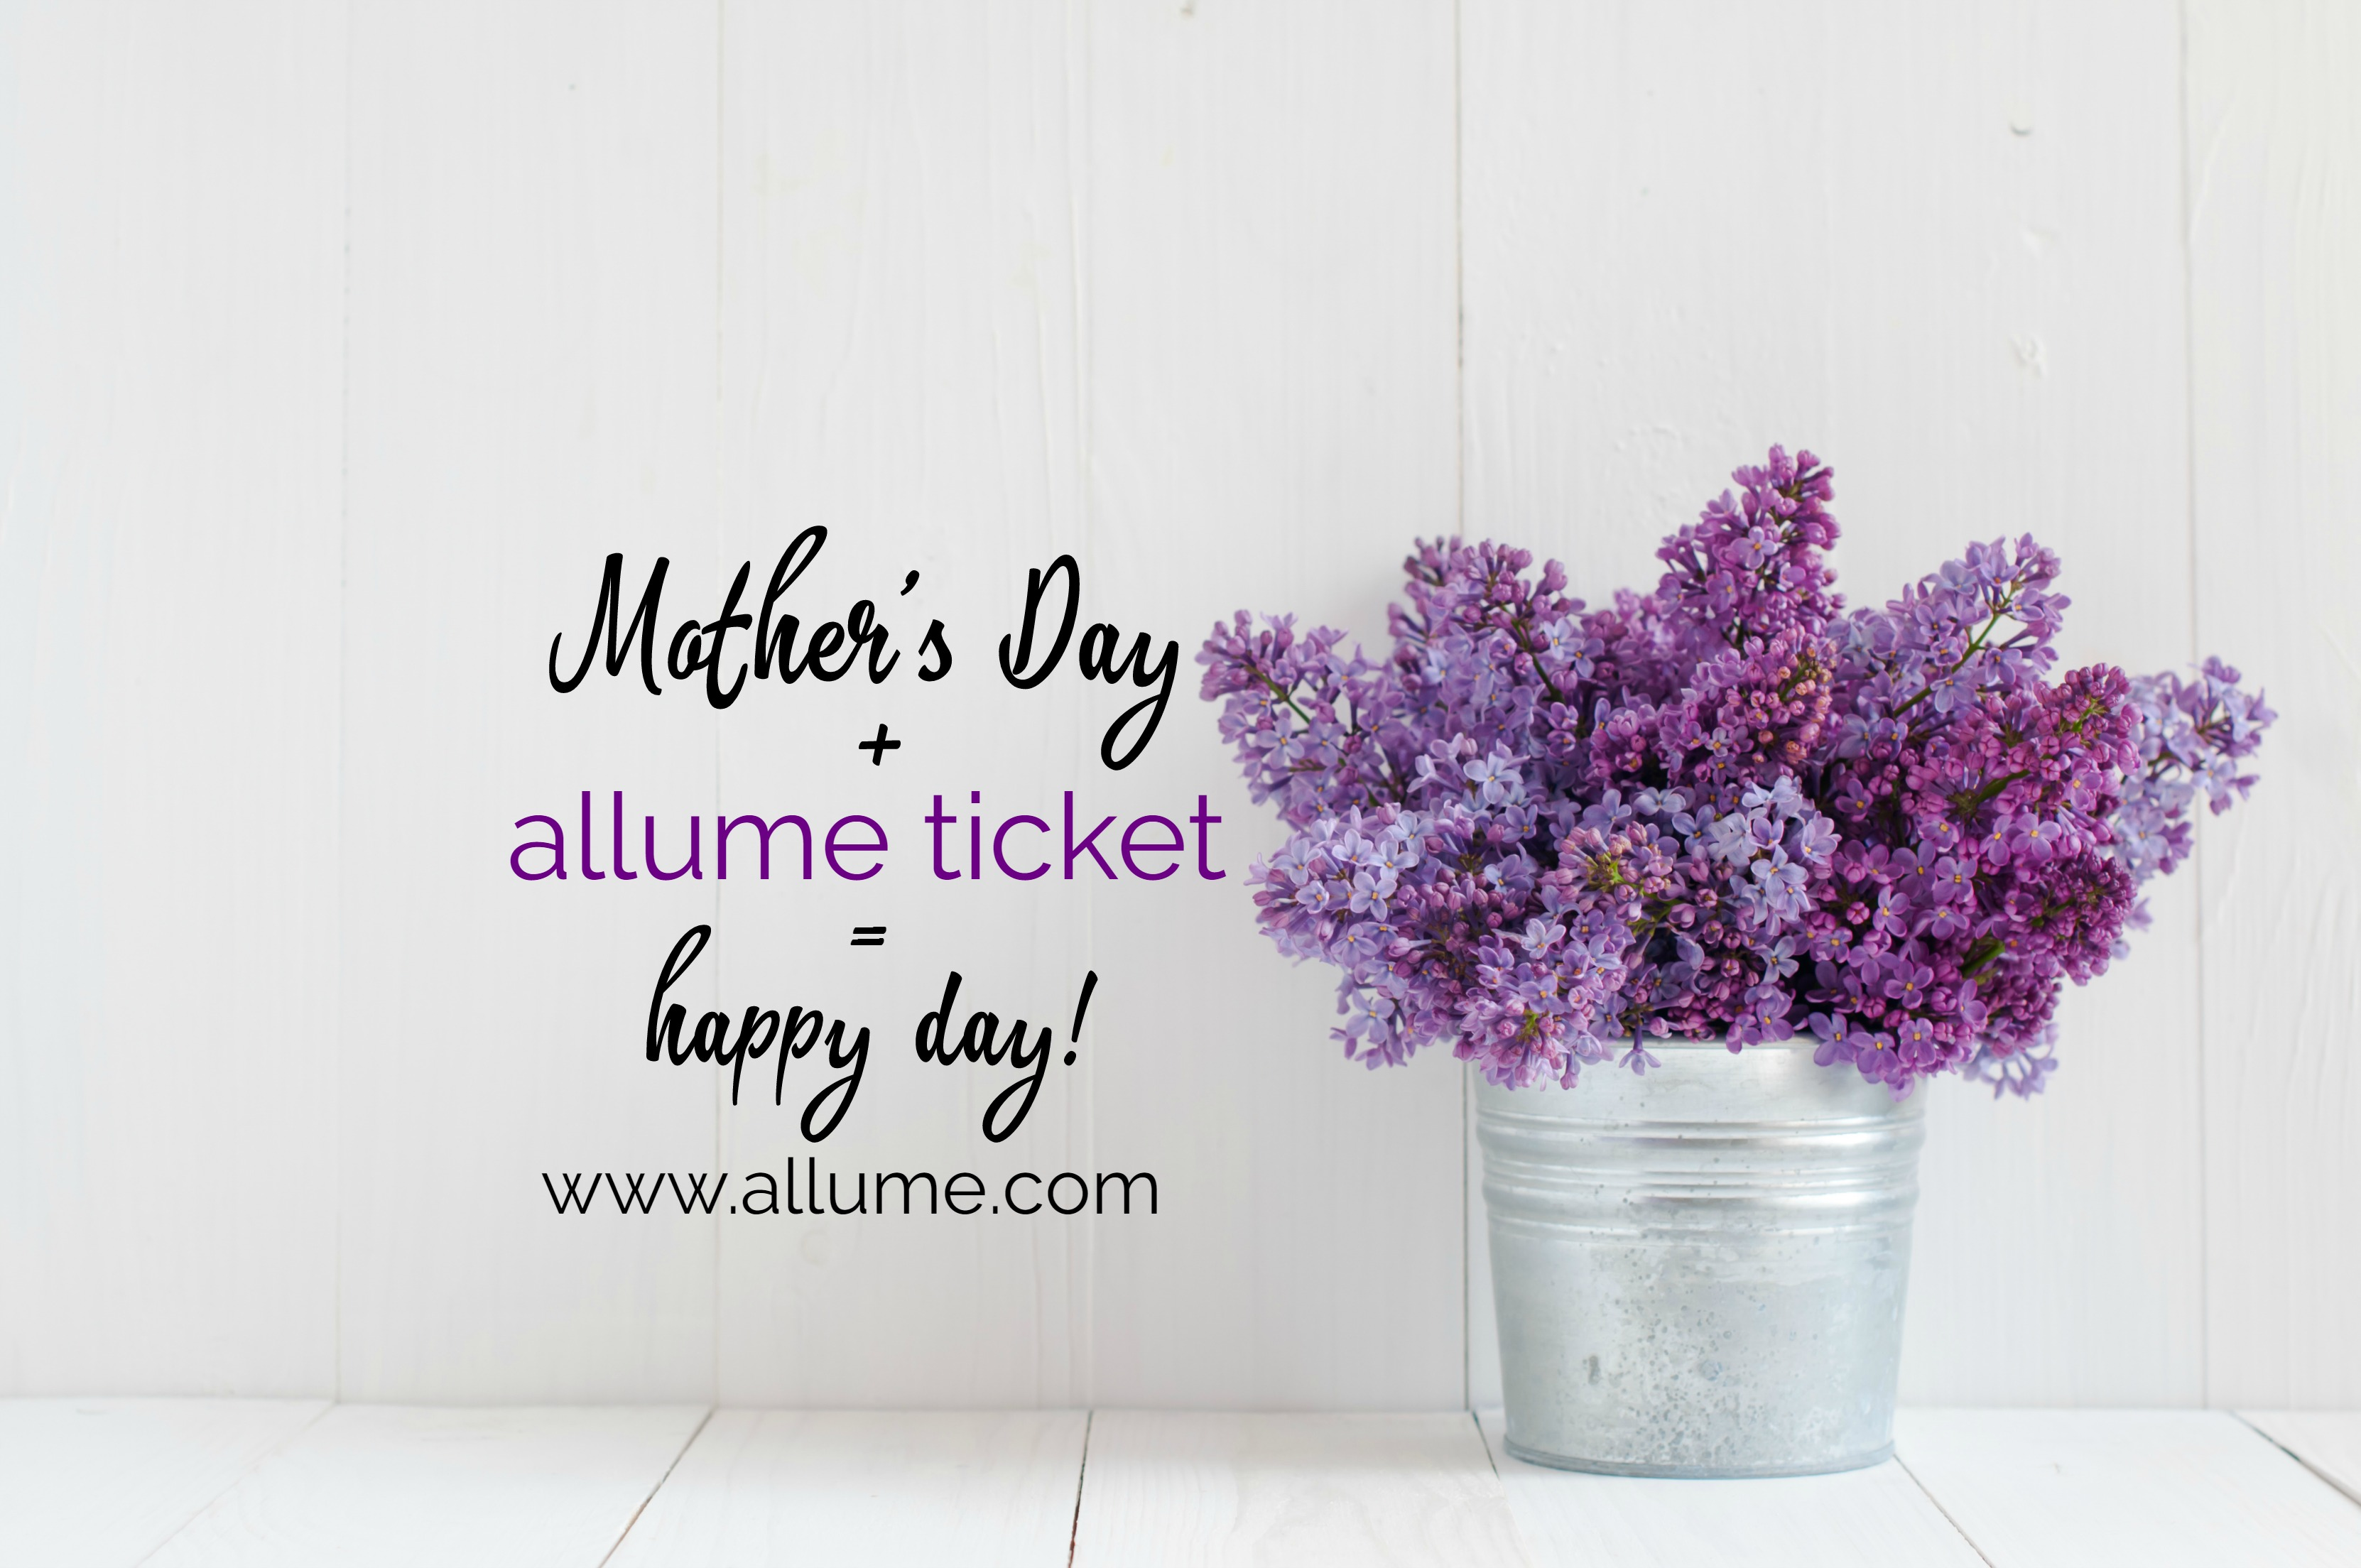 Sponsor love archives allume our sponsors have so many awesome products that would make amazing gifts for mothers day or really any other time of the year here is our current top five fandeluxe Images